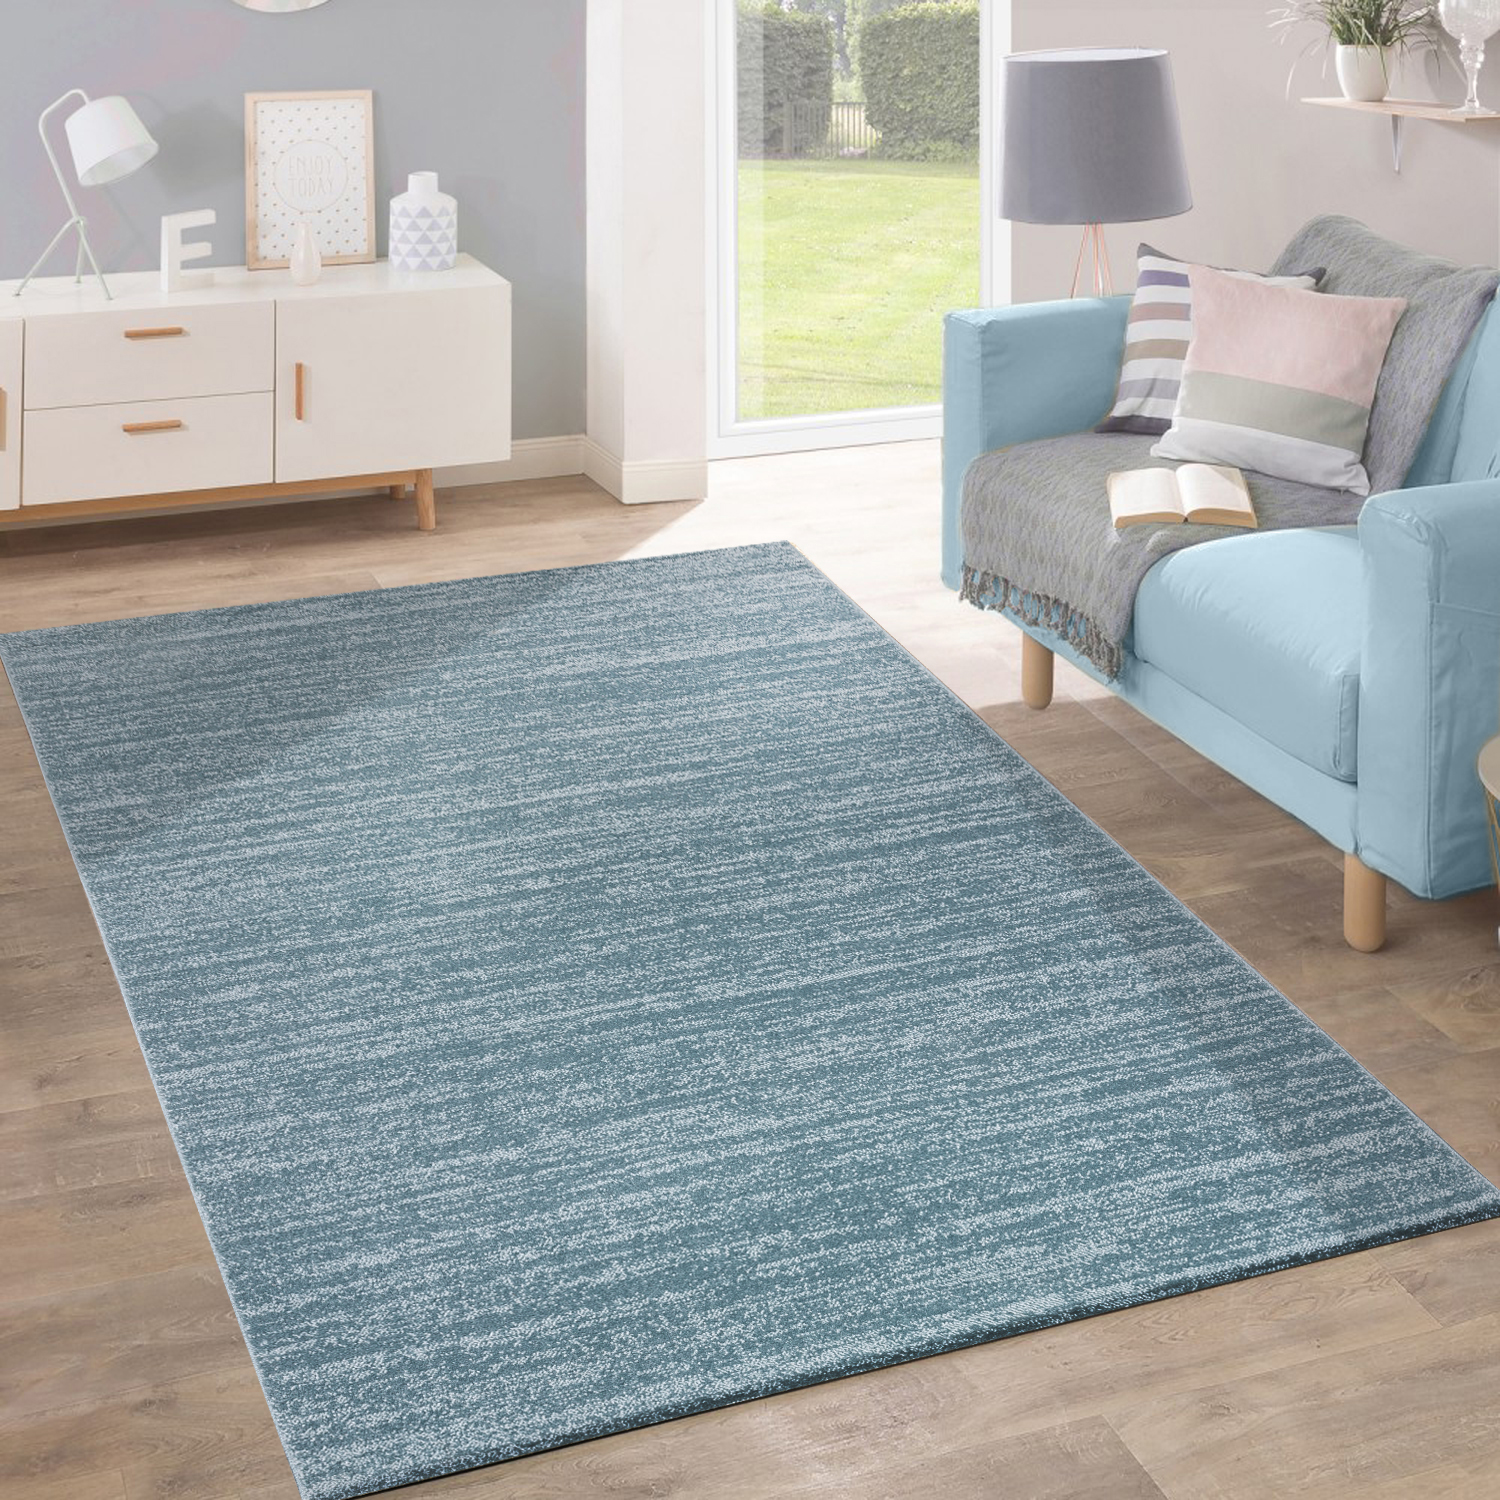 tapis poils ras moderne tendance tons pastel design chin inspiration turquoise tapis tapis poil ras. Black Bedroom Furniture Sets. Home Design Ideas